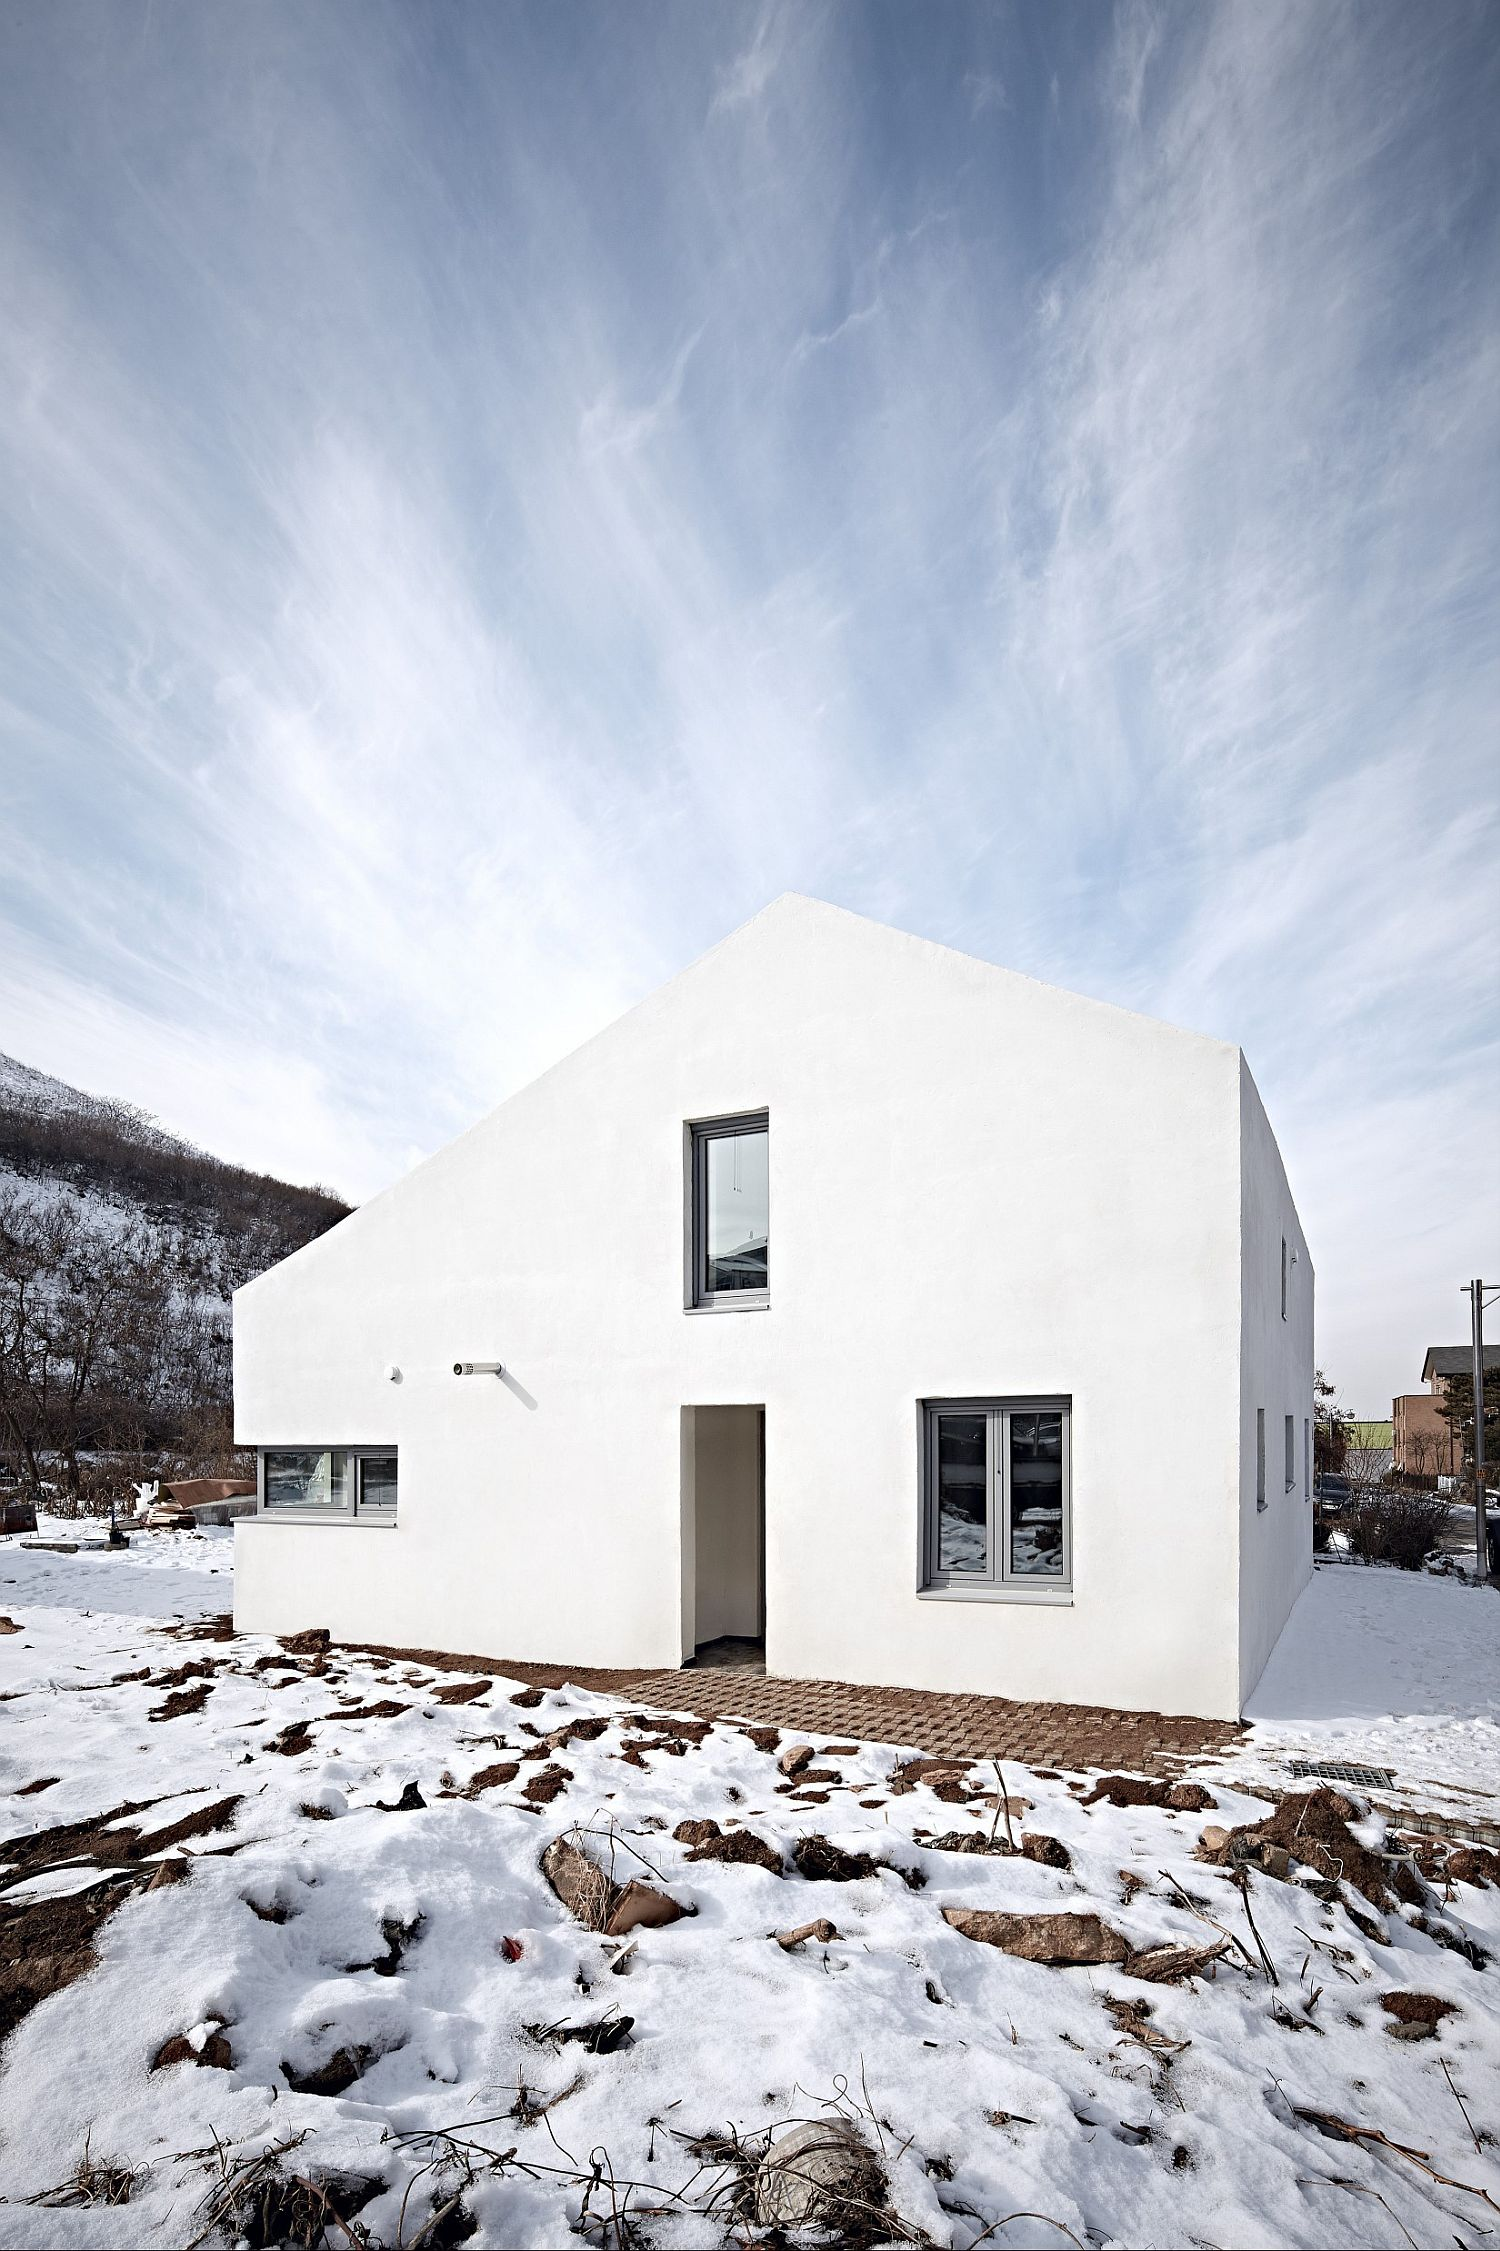 White exterior of the house blends into the backdrop